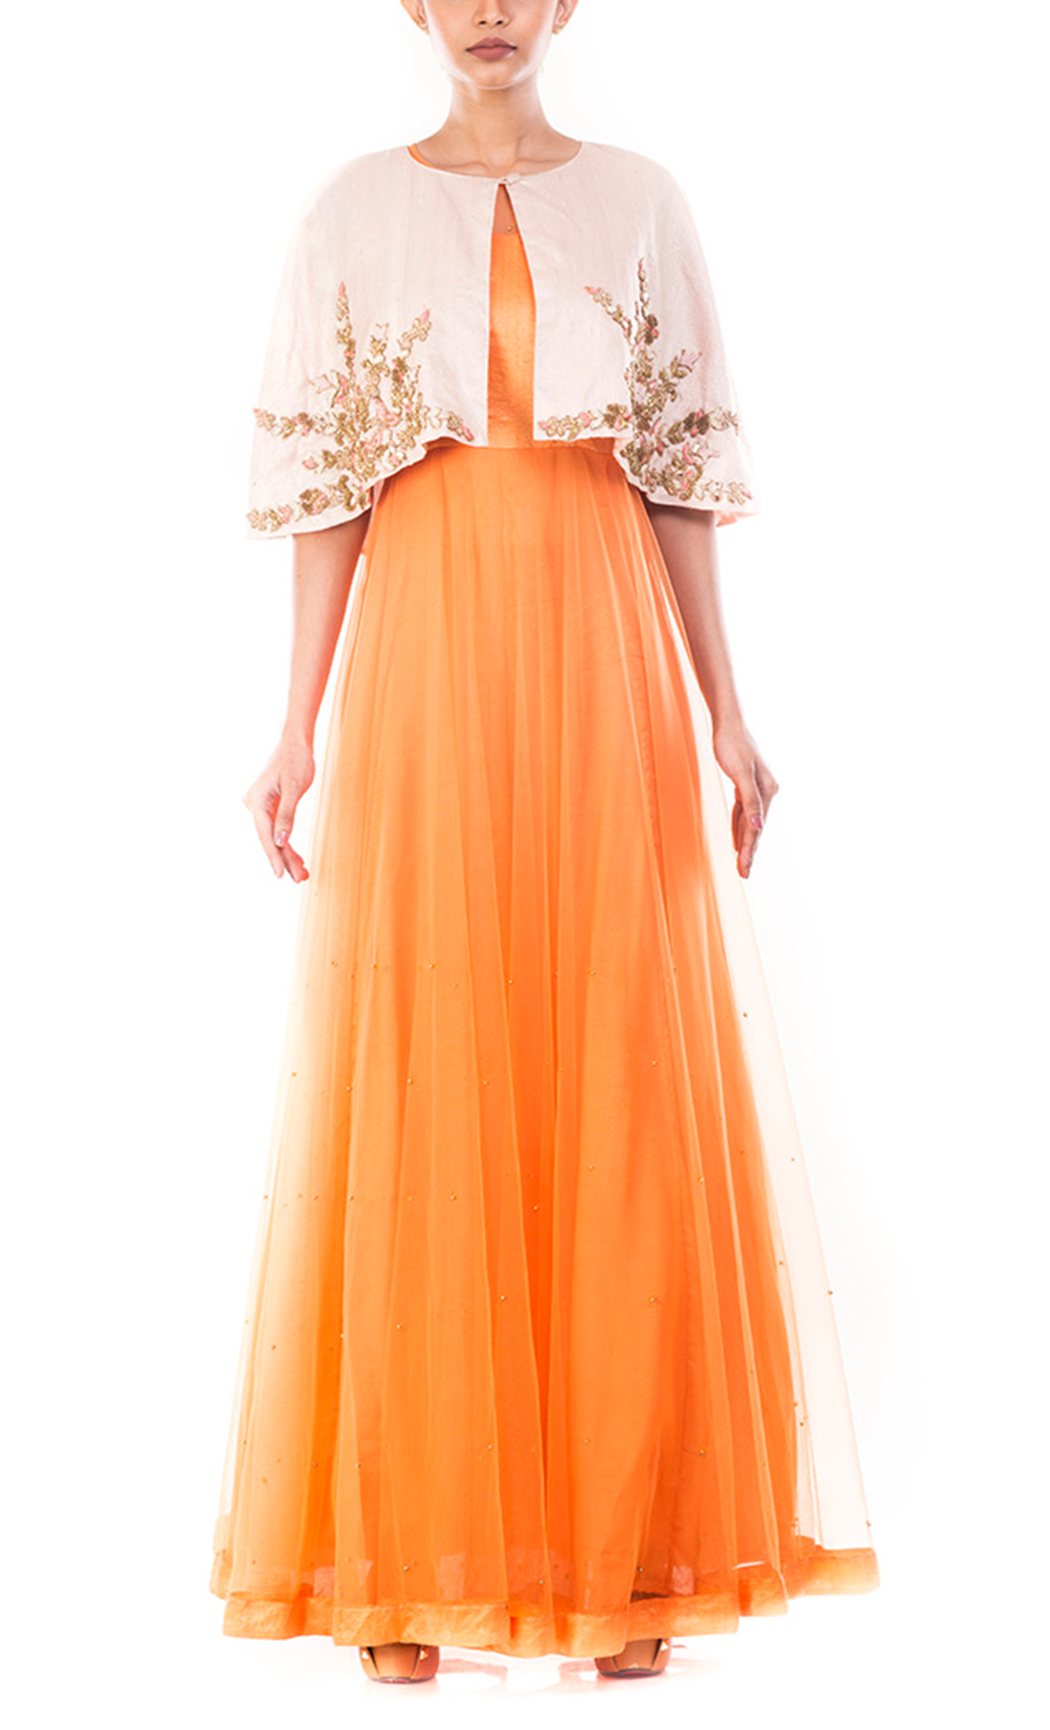 Tangerine Vintage Gown with an Embellished Jacket